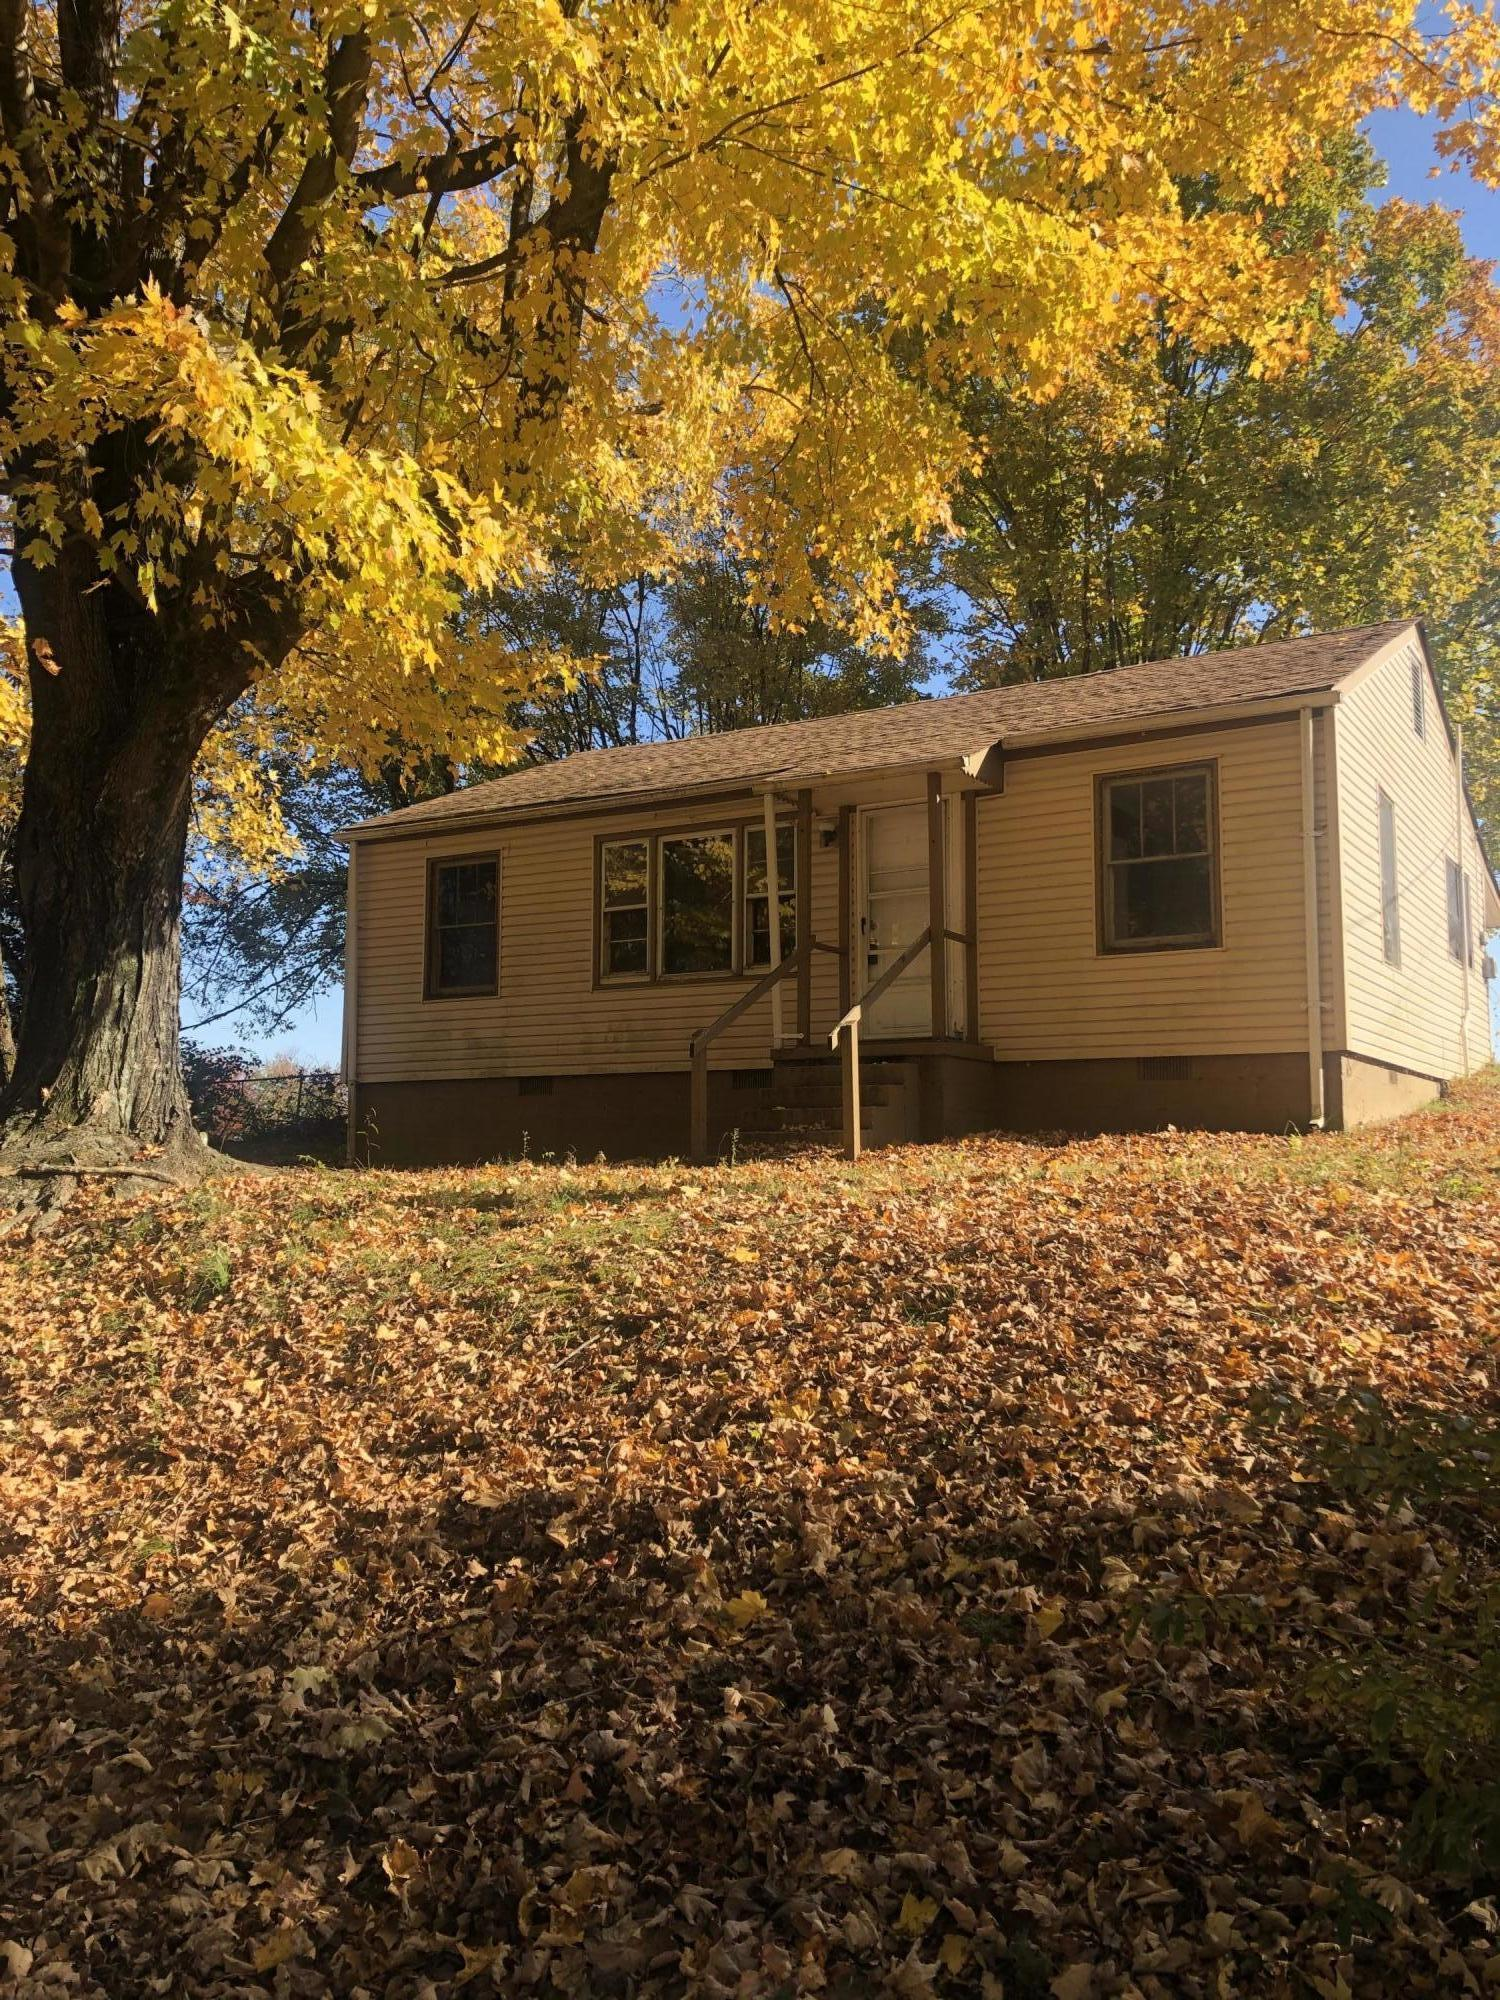 7217 Highway 11 W, Lenoir City, Tennessee 37771, 3 Bedrooms Bedrooms, ,1 BathroomBathrooms,Single Family,For Sale,Highway 11 W,1100332